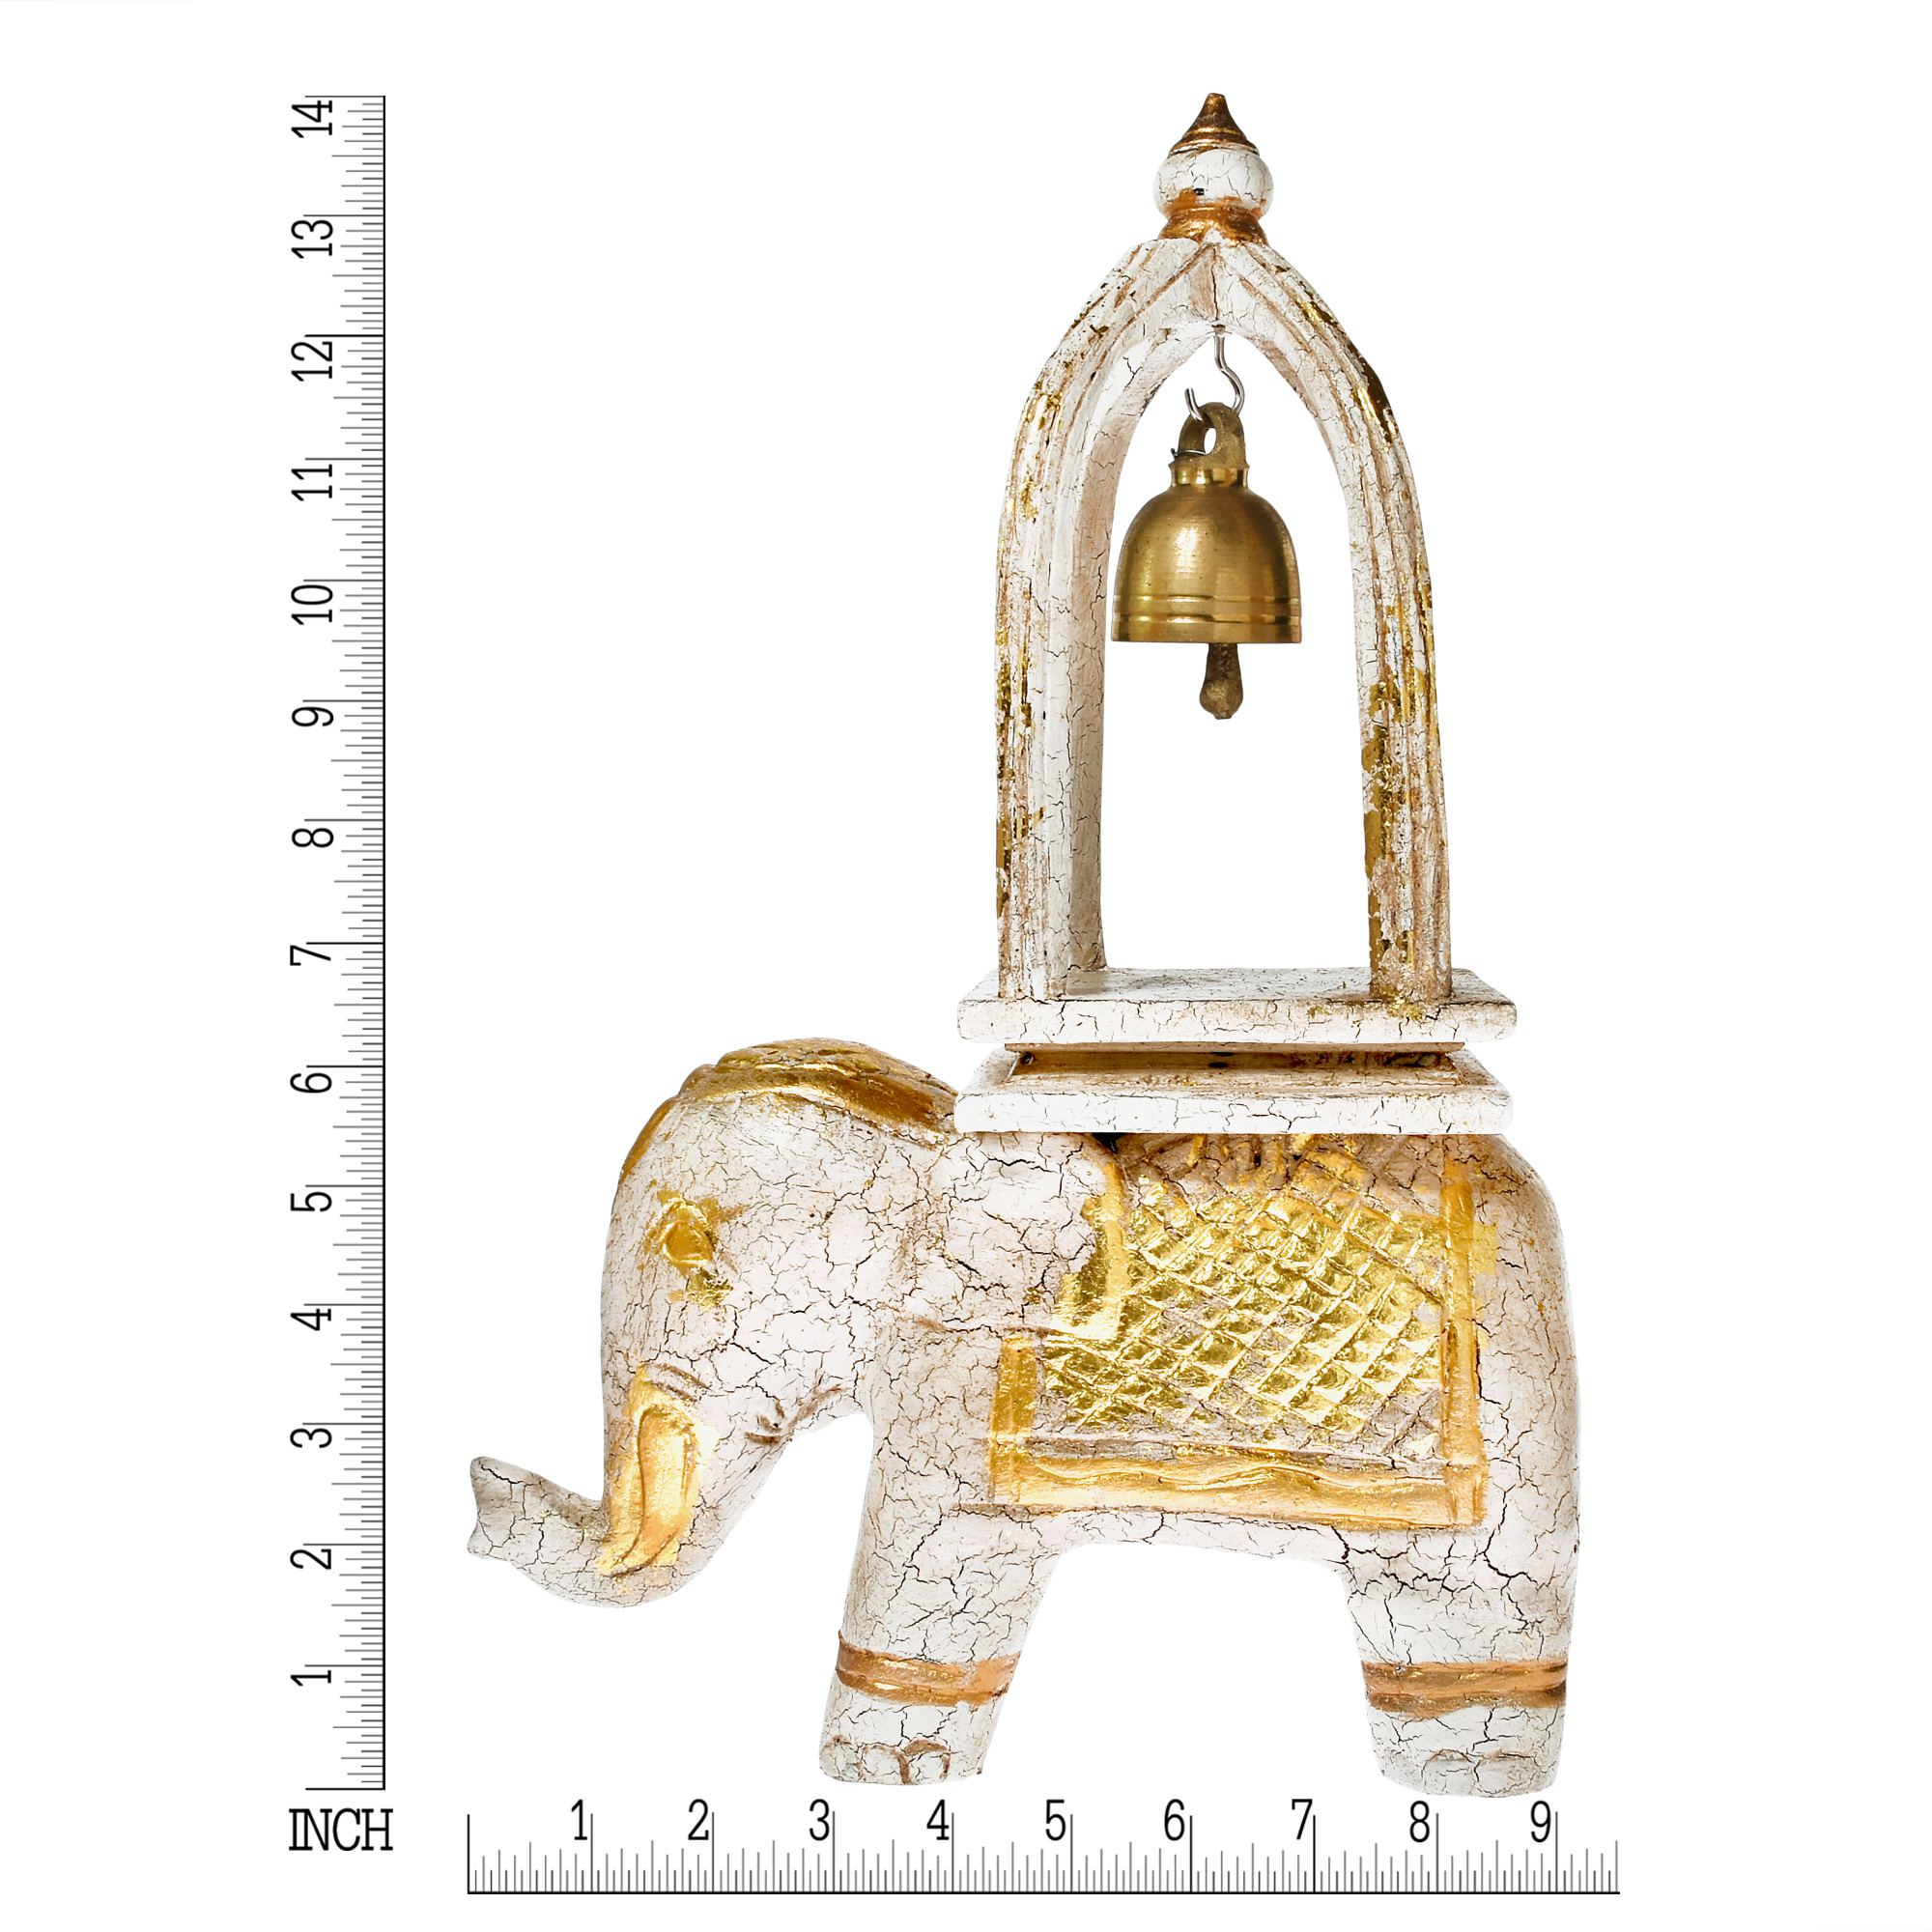 White elephant ring of good fortune bell carved wood and brass in chinese and asian cultures the elephant is symbolic of happiness longevity and good luck designed in the spirit of this ancient symbolism buycottarizona Gallery